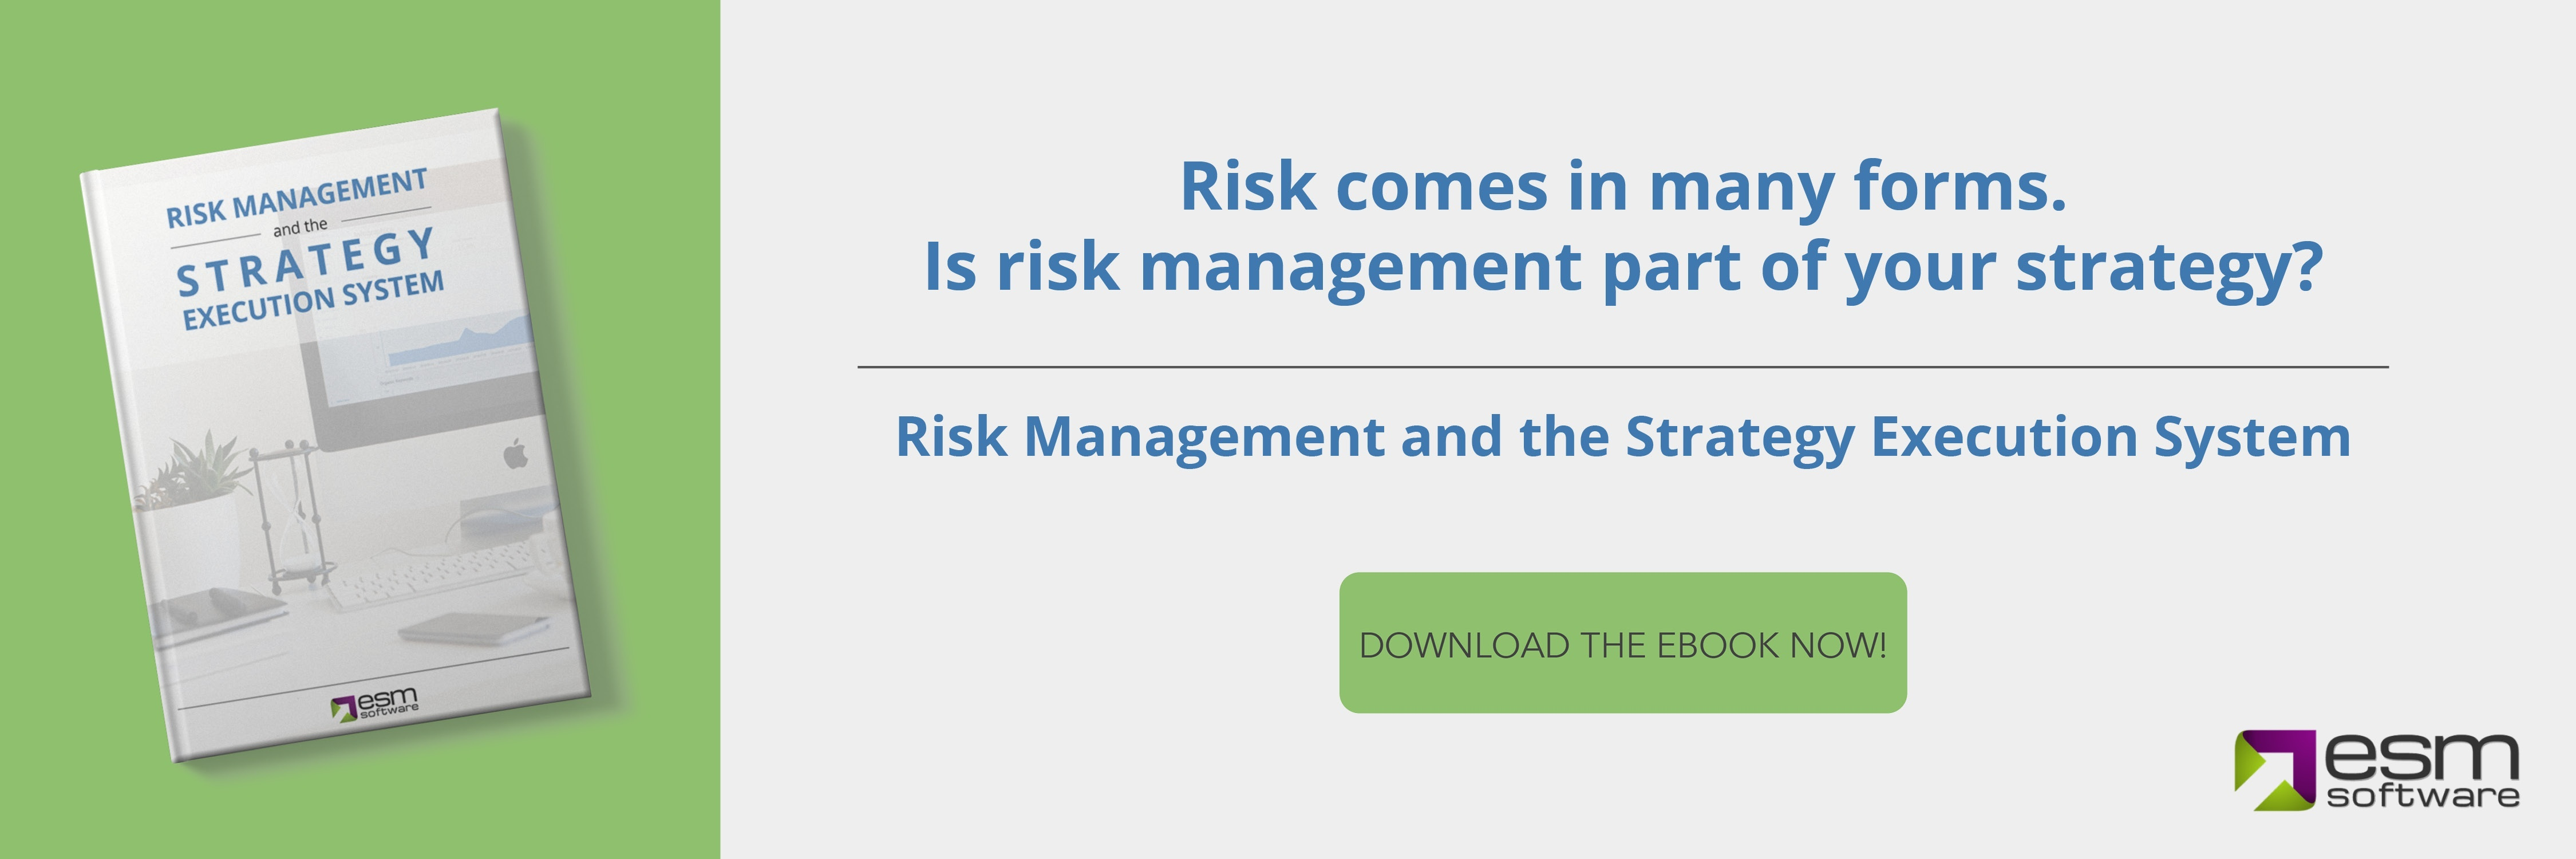 Risk Management and the Strategy Execution System